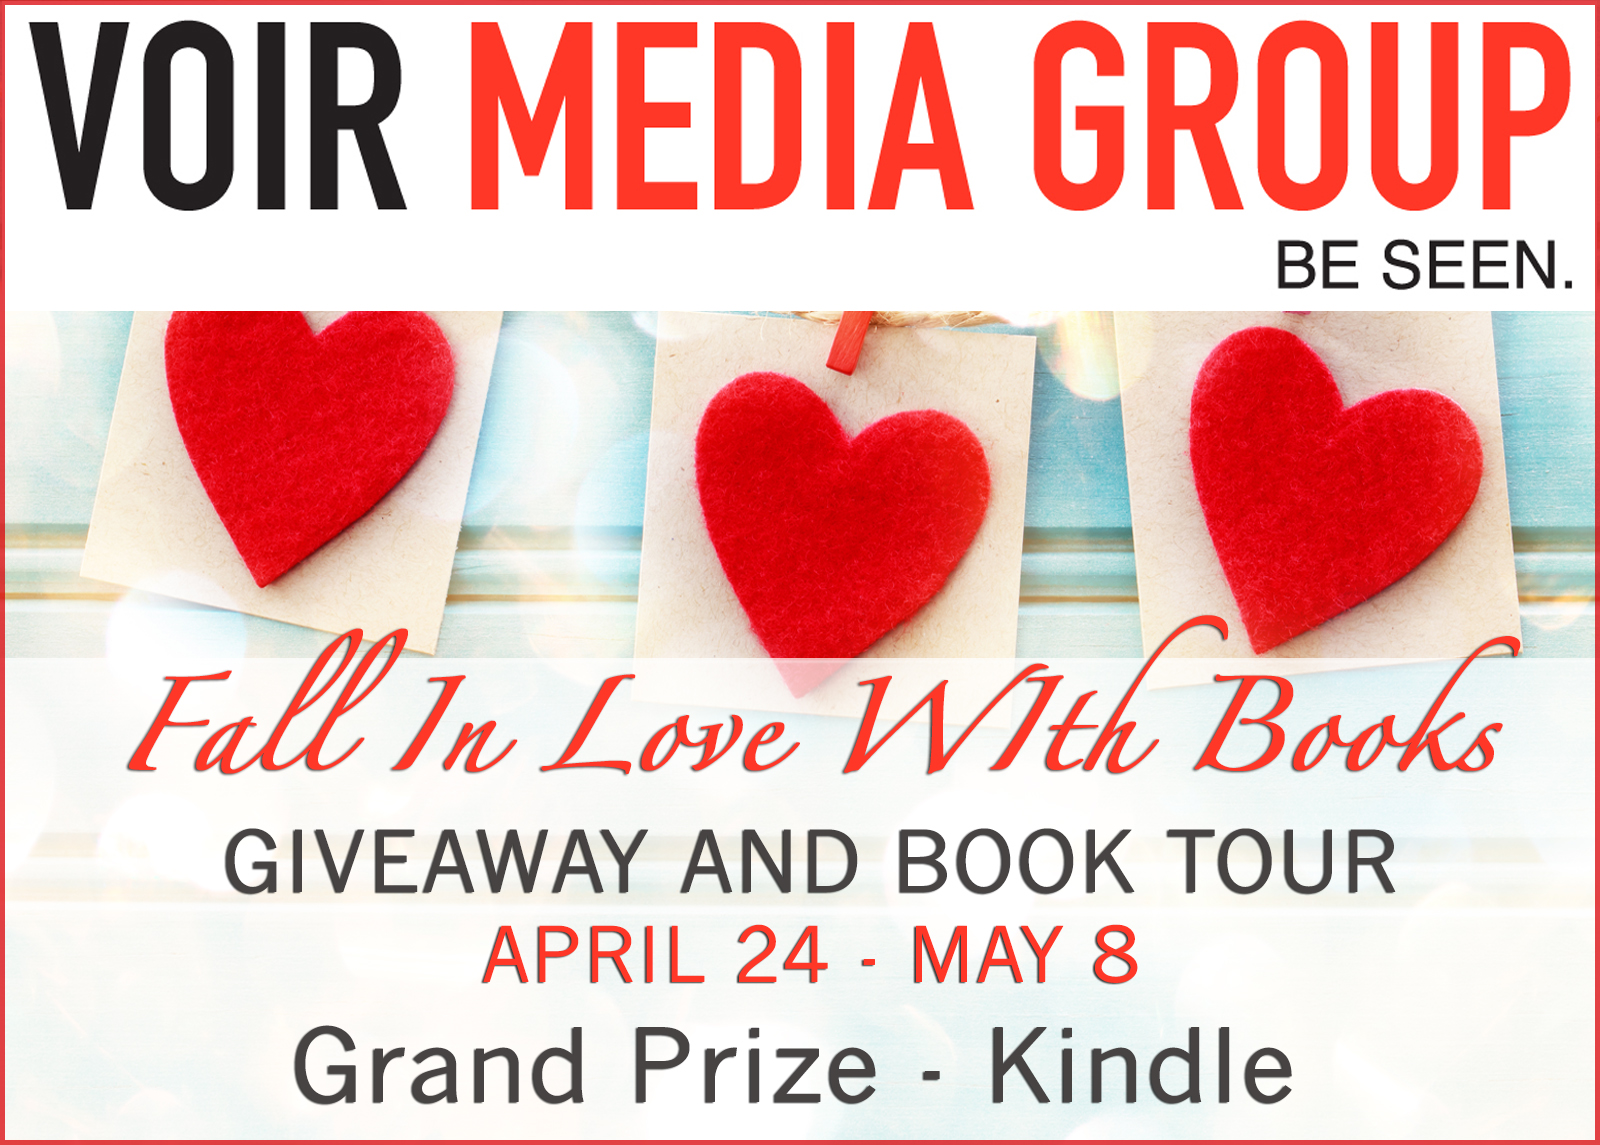 Fall In Love With Books BLOG HOP & GIVEAWAY